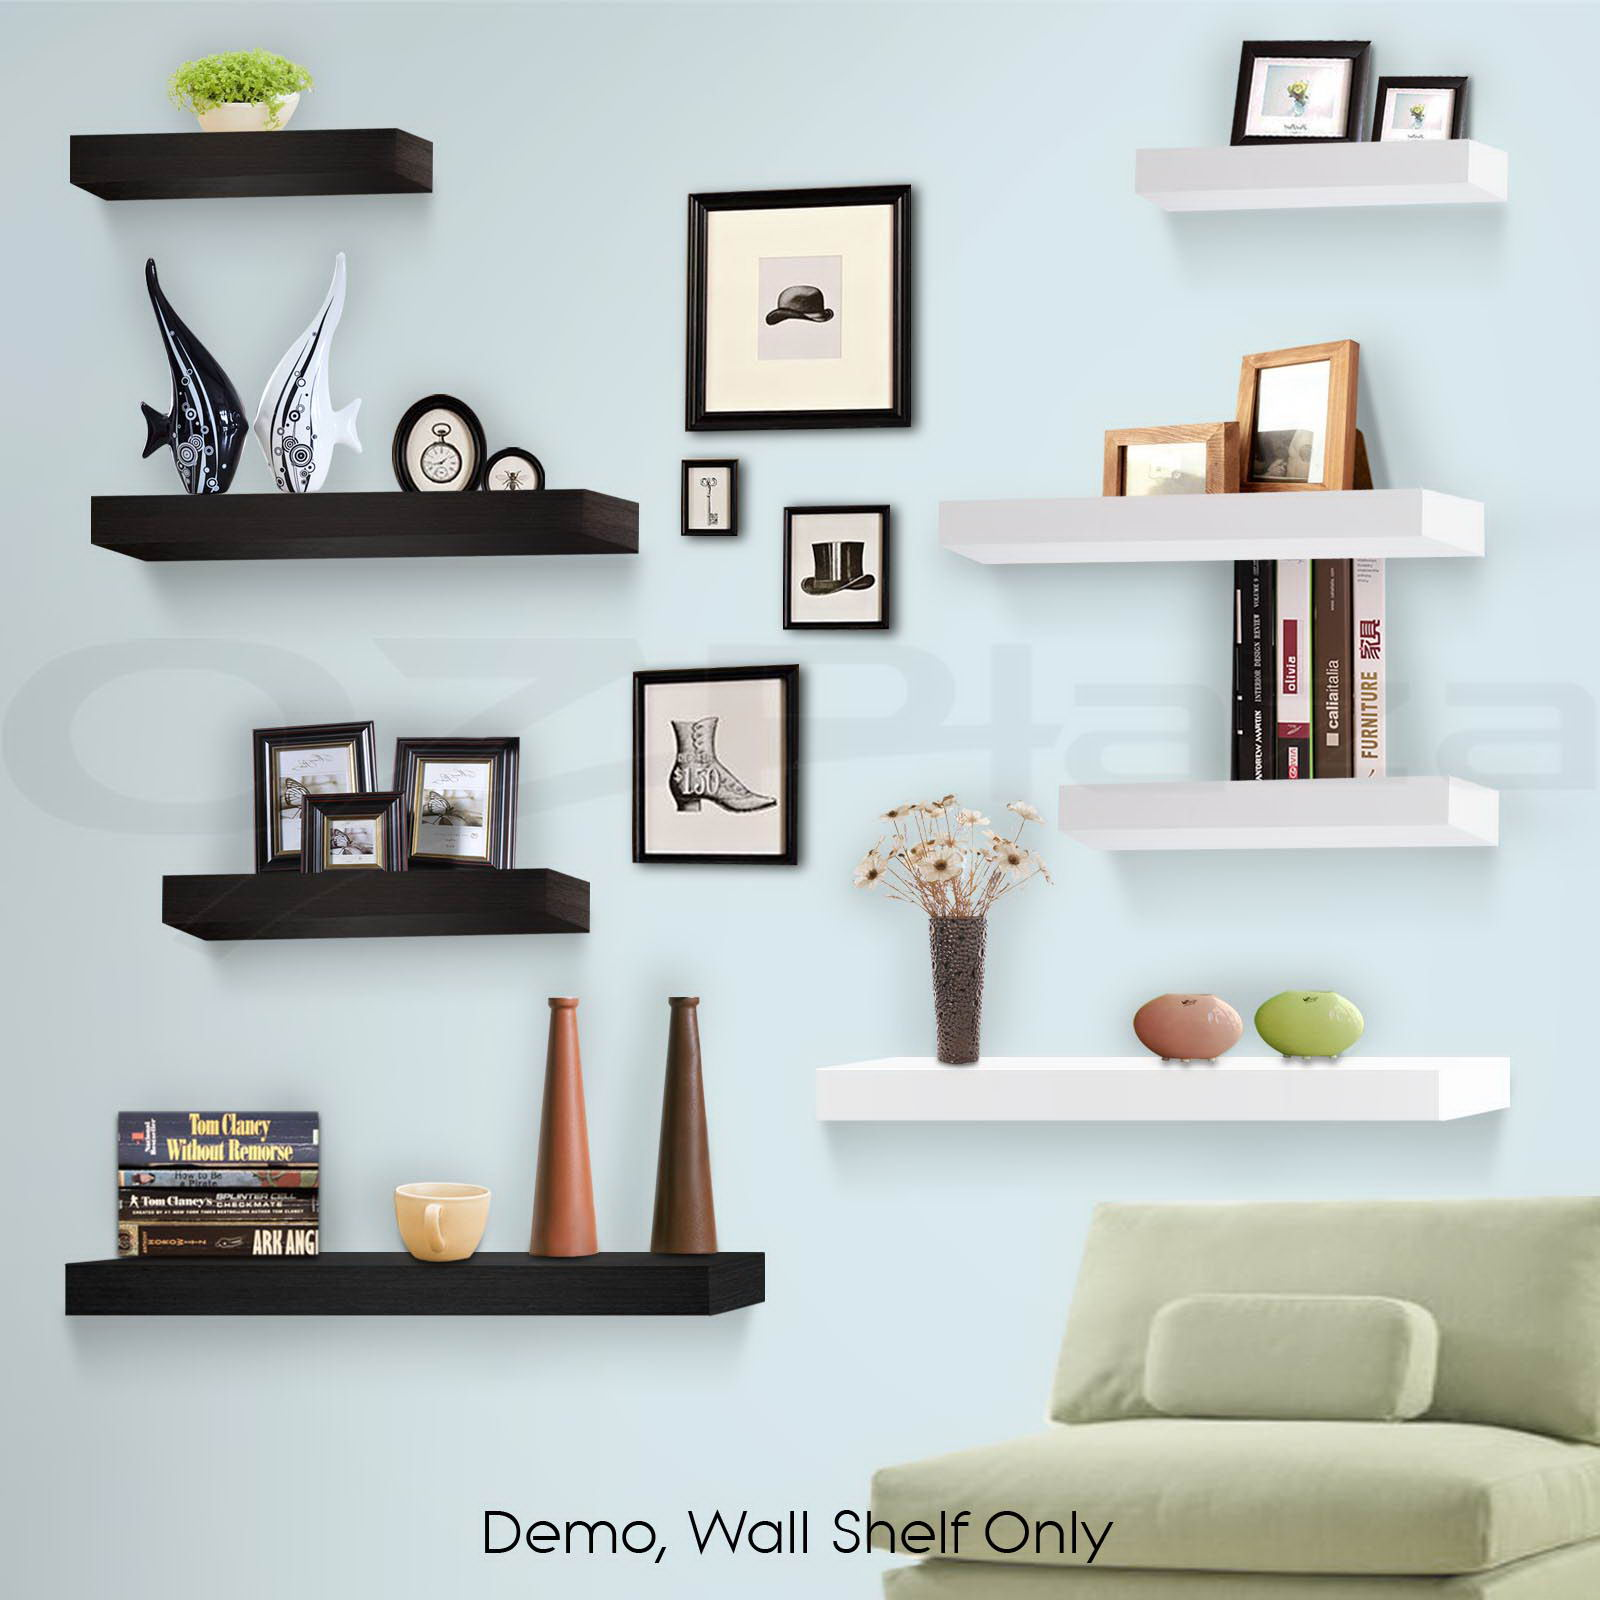 Design Display Bookshelf 3pcs wall floating shelf set concealed shelves bookshelf shop bookshelf